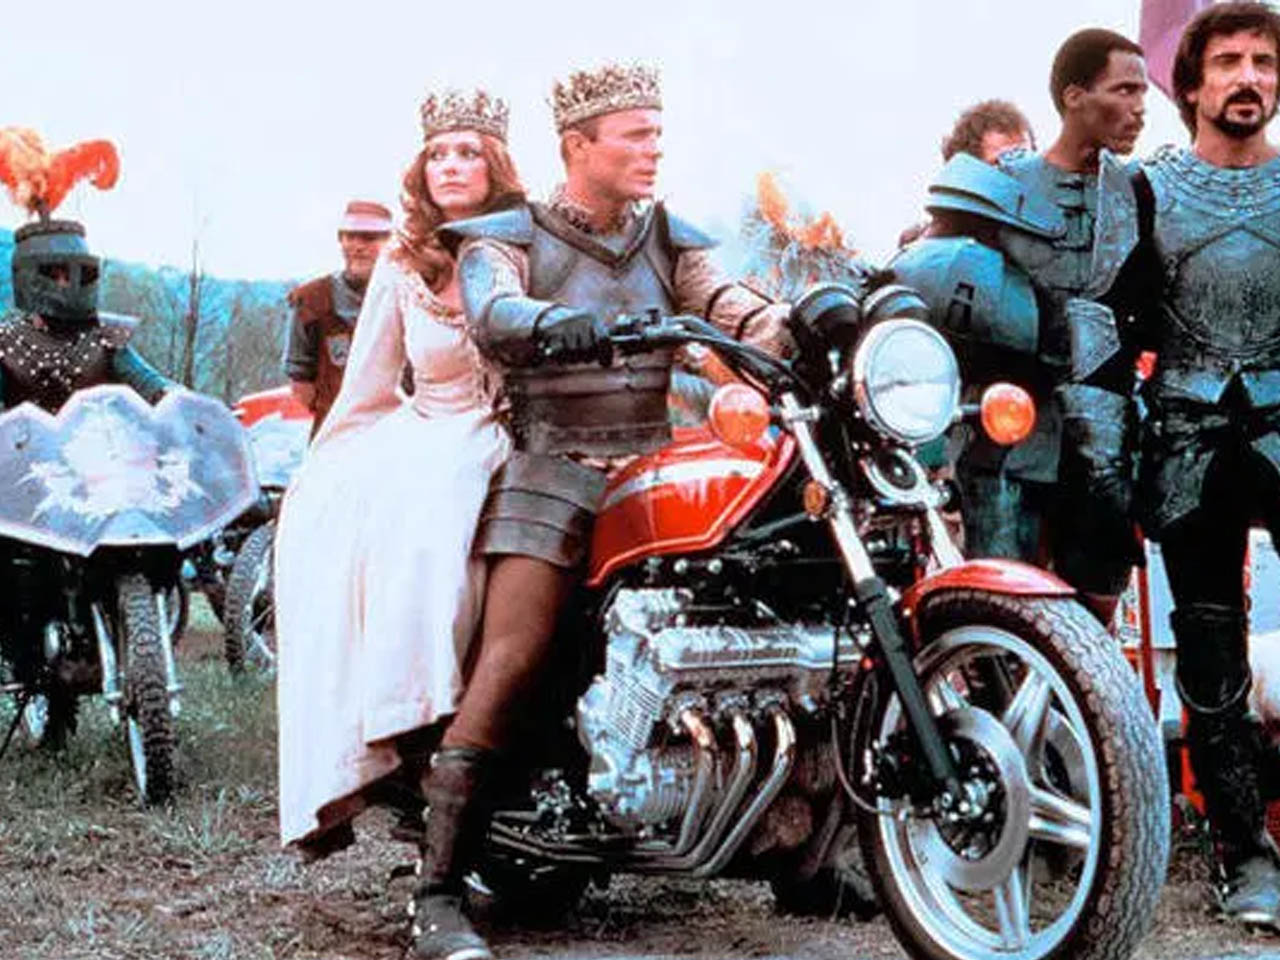 1981 Movie Project - Knightriders - 01